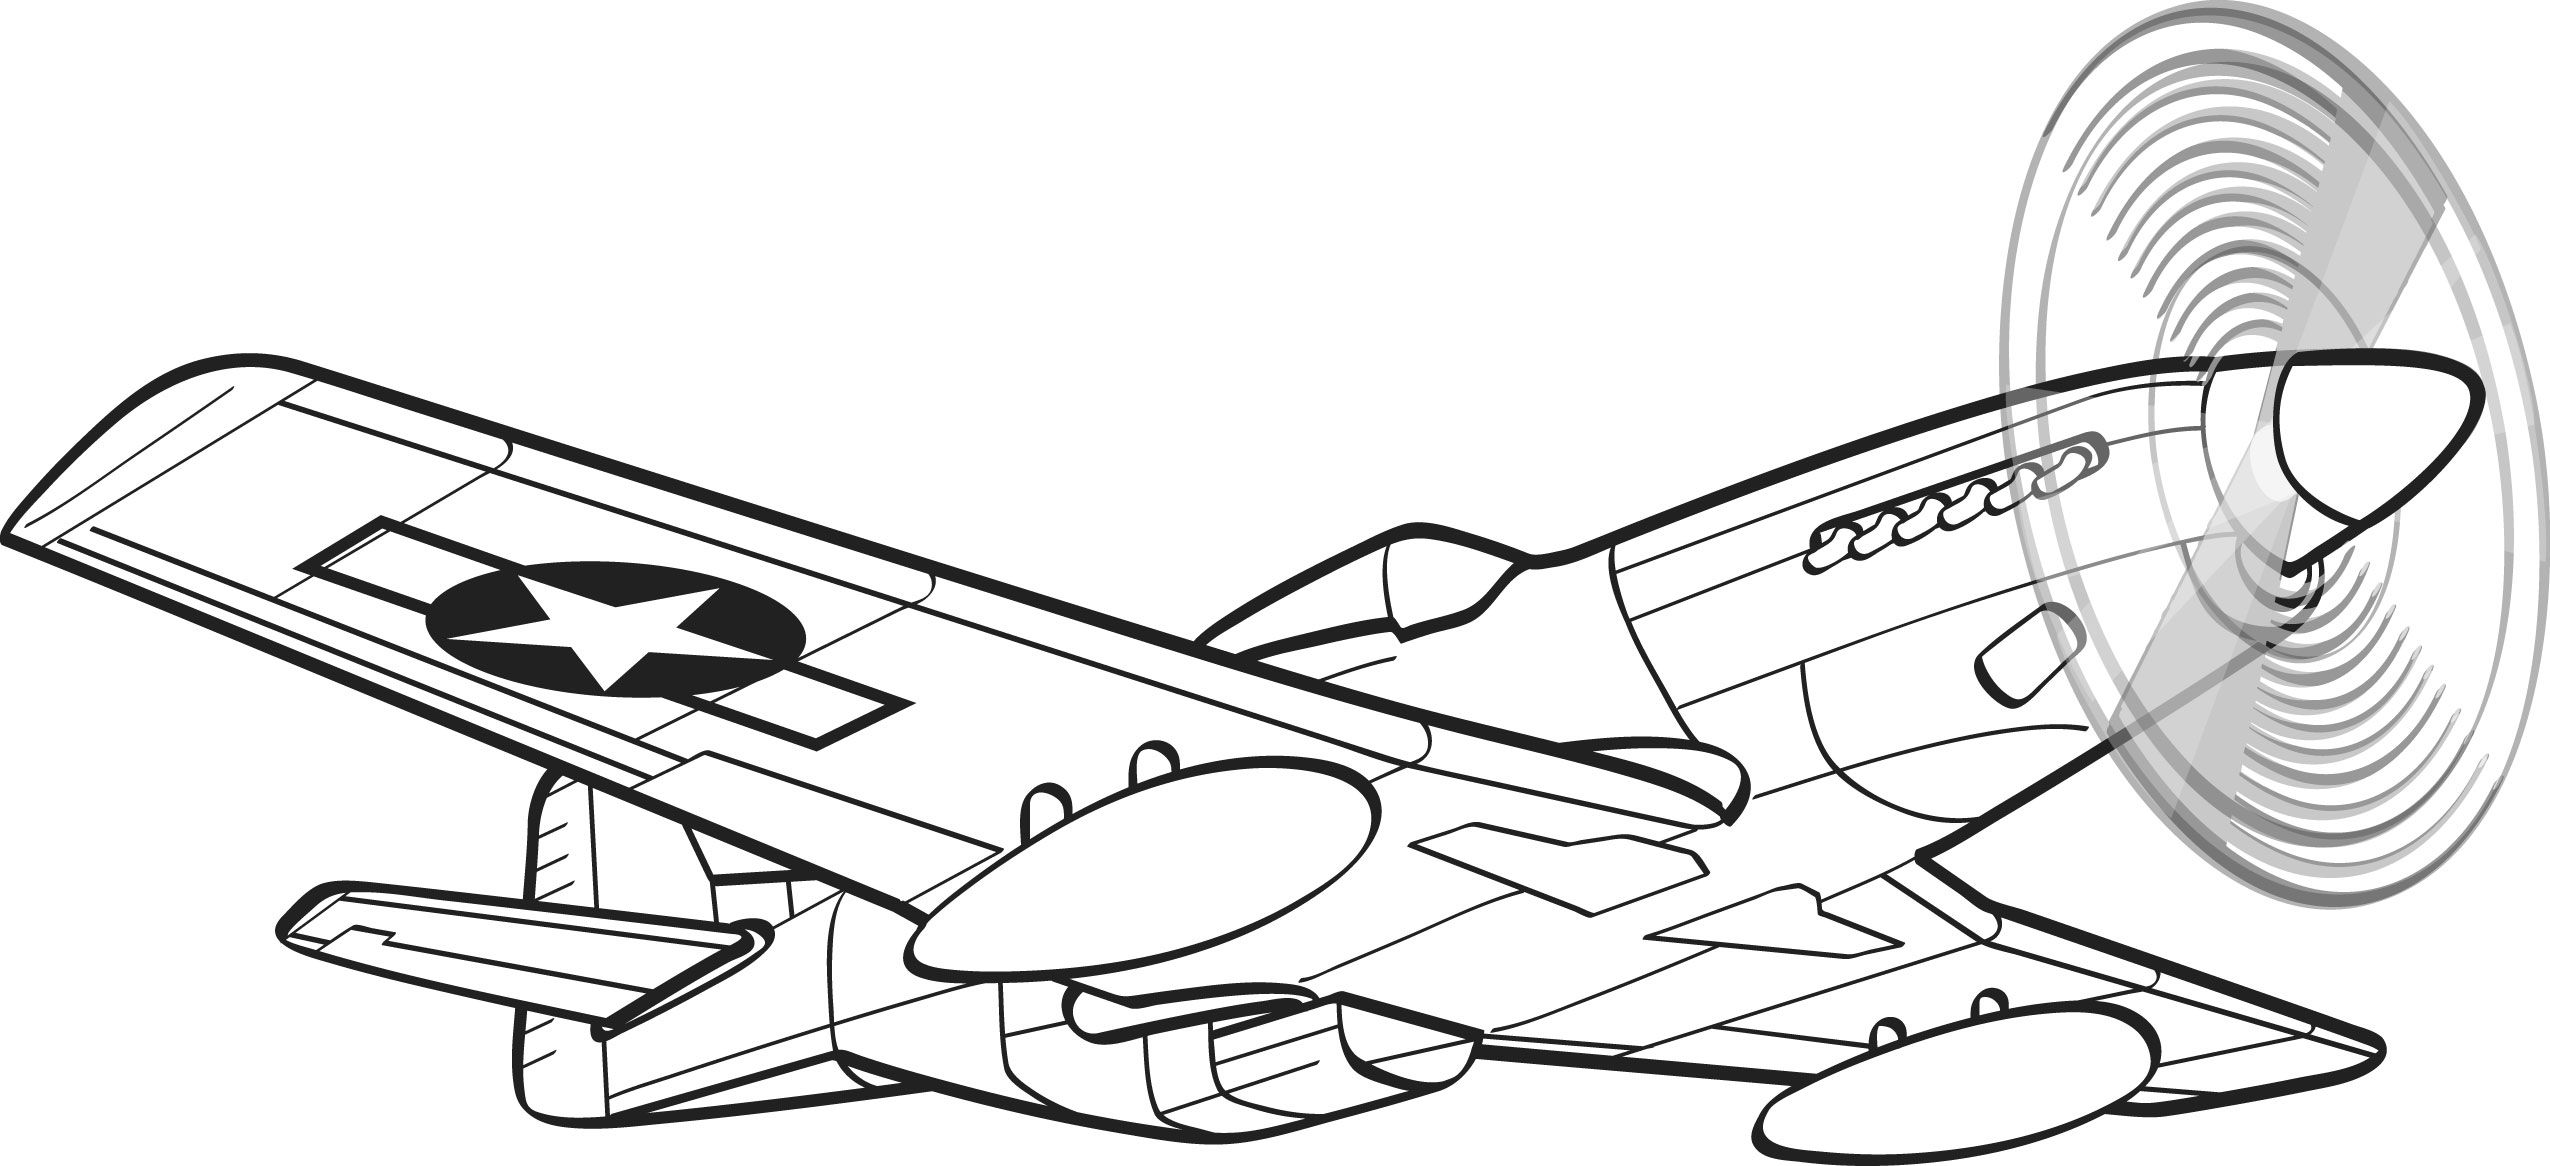 Wwii aircraft clipart p51 jpg black and white plane tattoo designs | worked very hard to create cool and ... jpg black and white